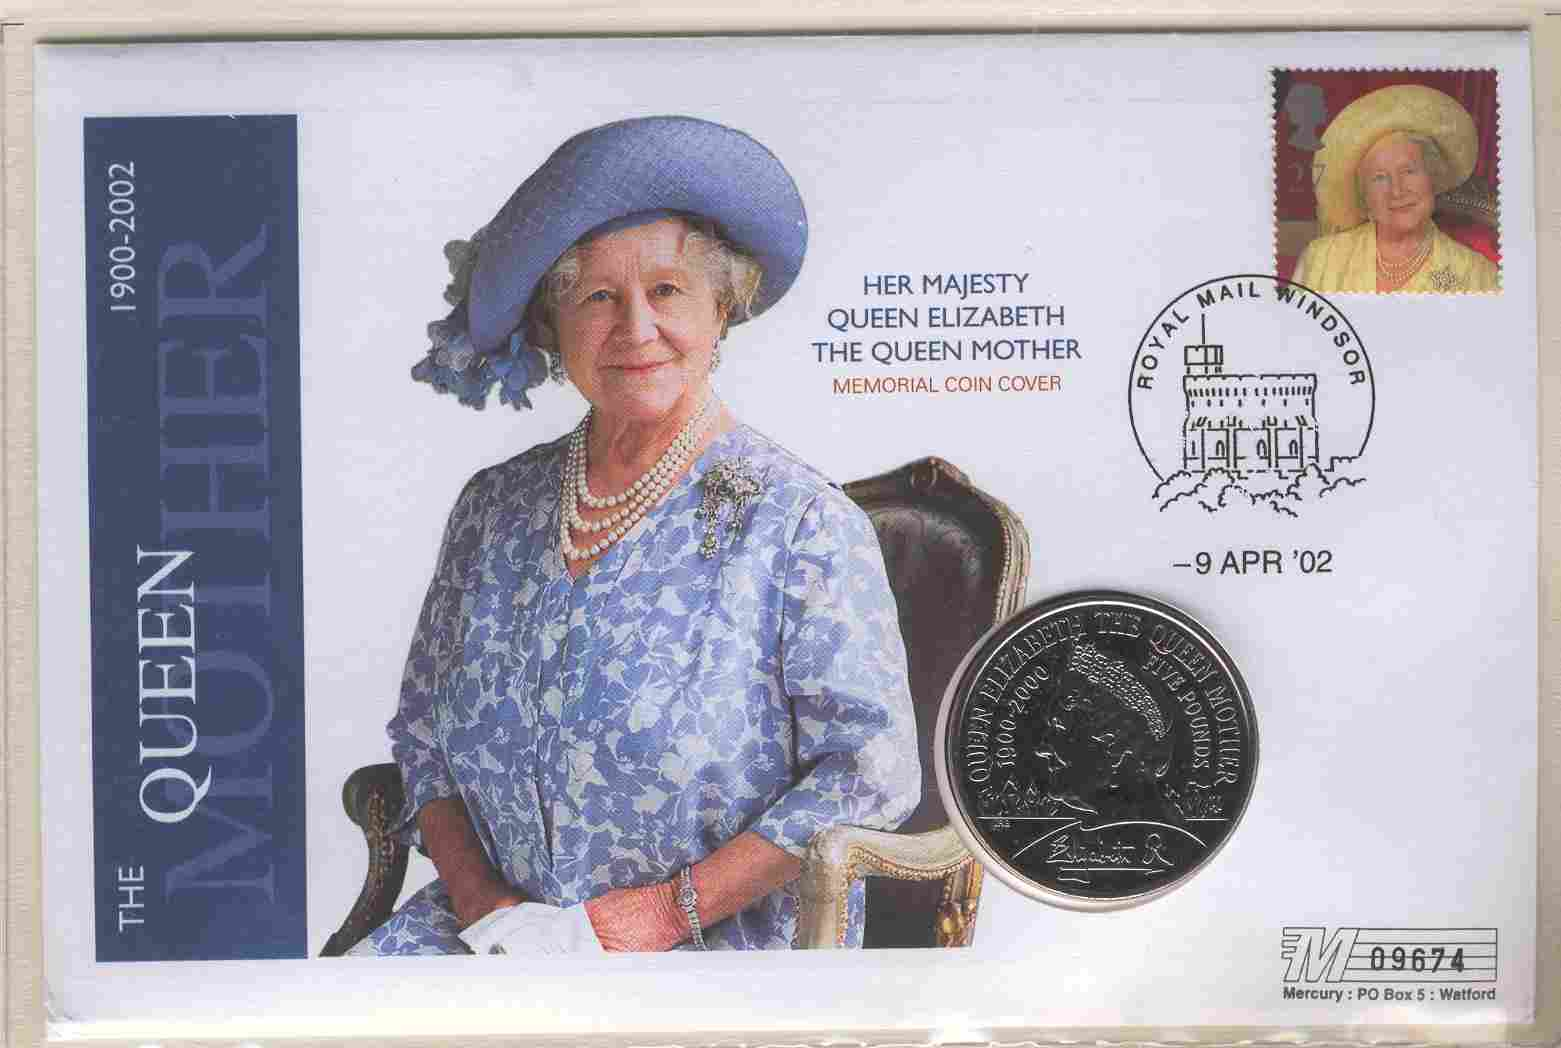 2002 GB - Queen Mother Memoriam Crown - Coin Cover